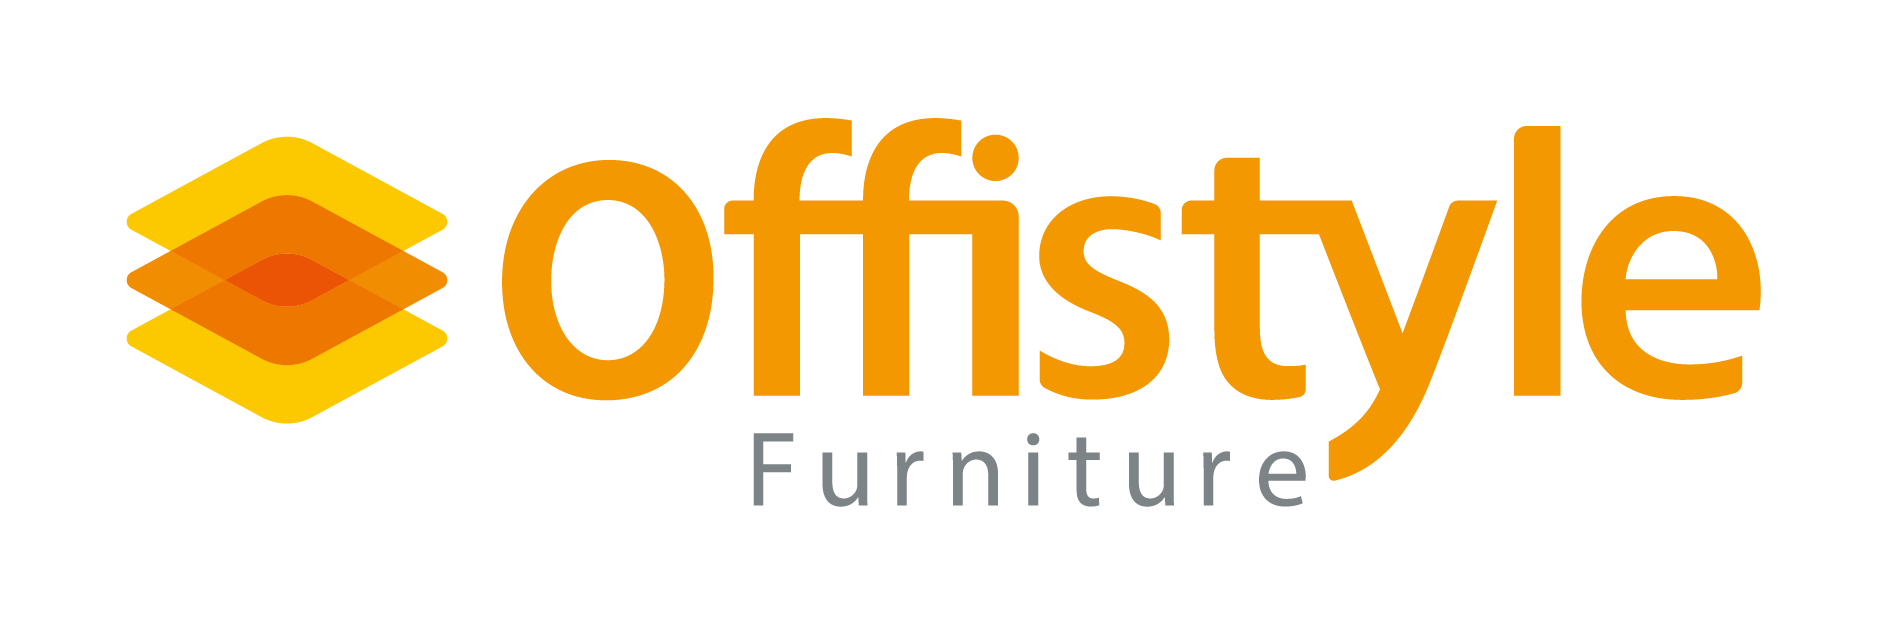 ChangZhou Offistyle Furniture Co.,Ltd logo